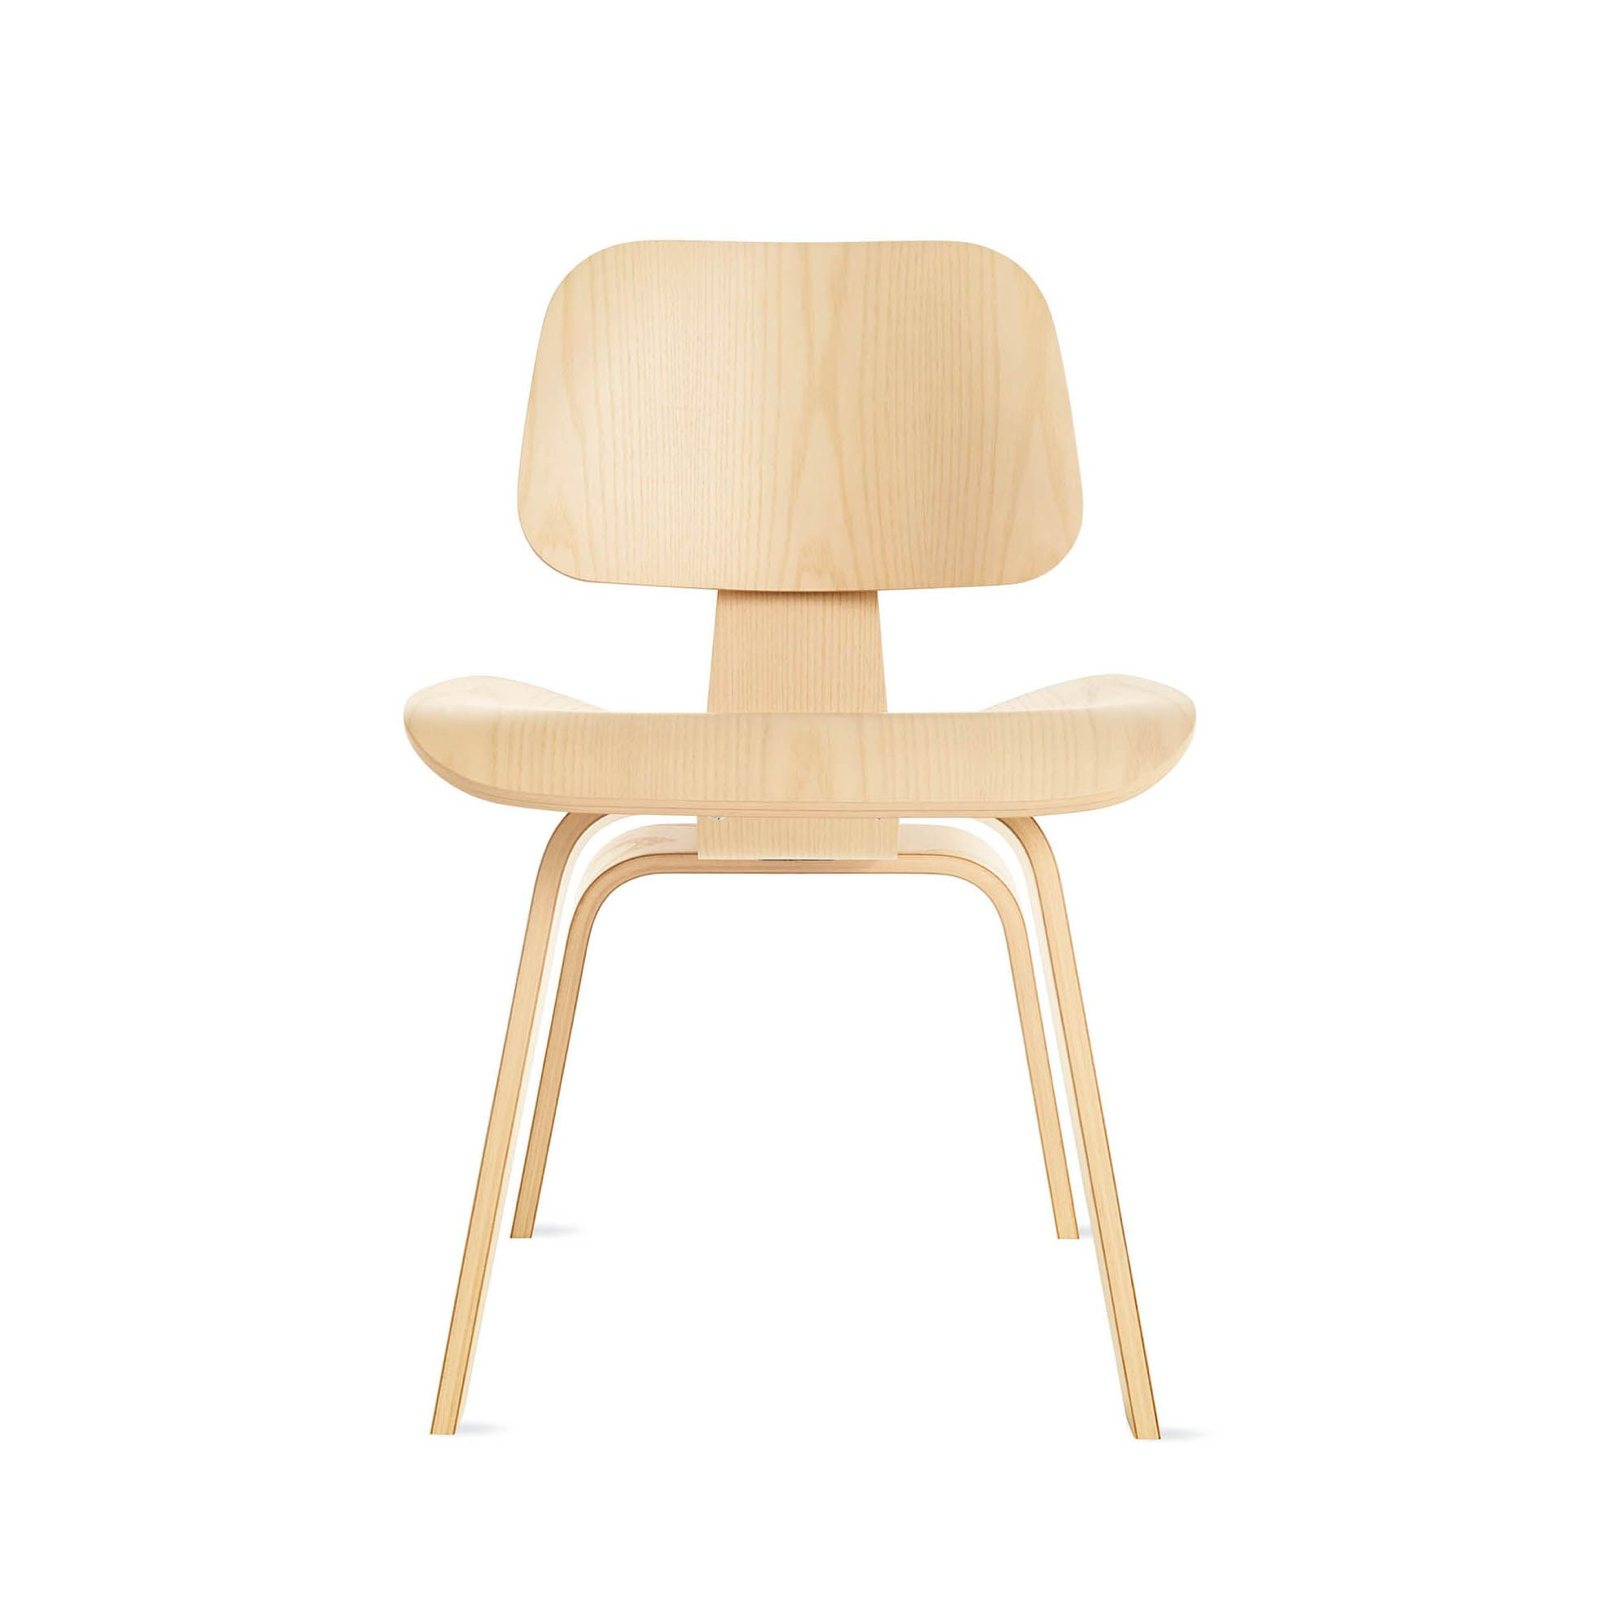 Eames Molded Plywood Dining Chair Wood Base by Charles u0026 Ray Eames for Herman Miller  sc 1 st  UP interiors & Eames Molded Plywood Dining Chair Wood Base by Charles u0026 Ray Eames ...